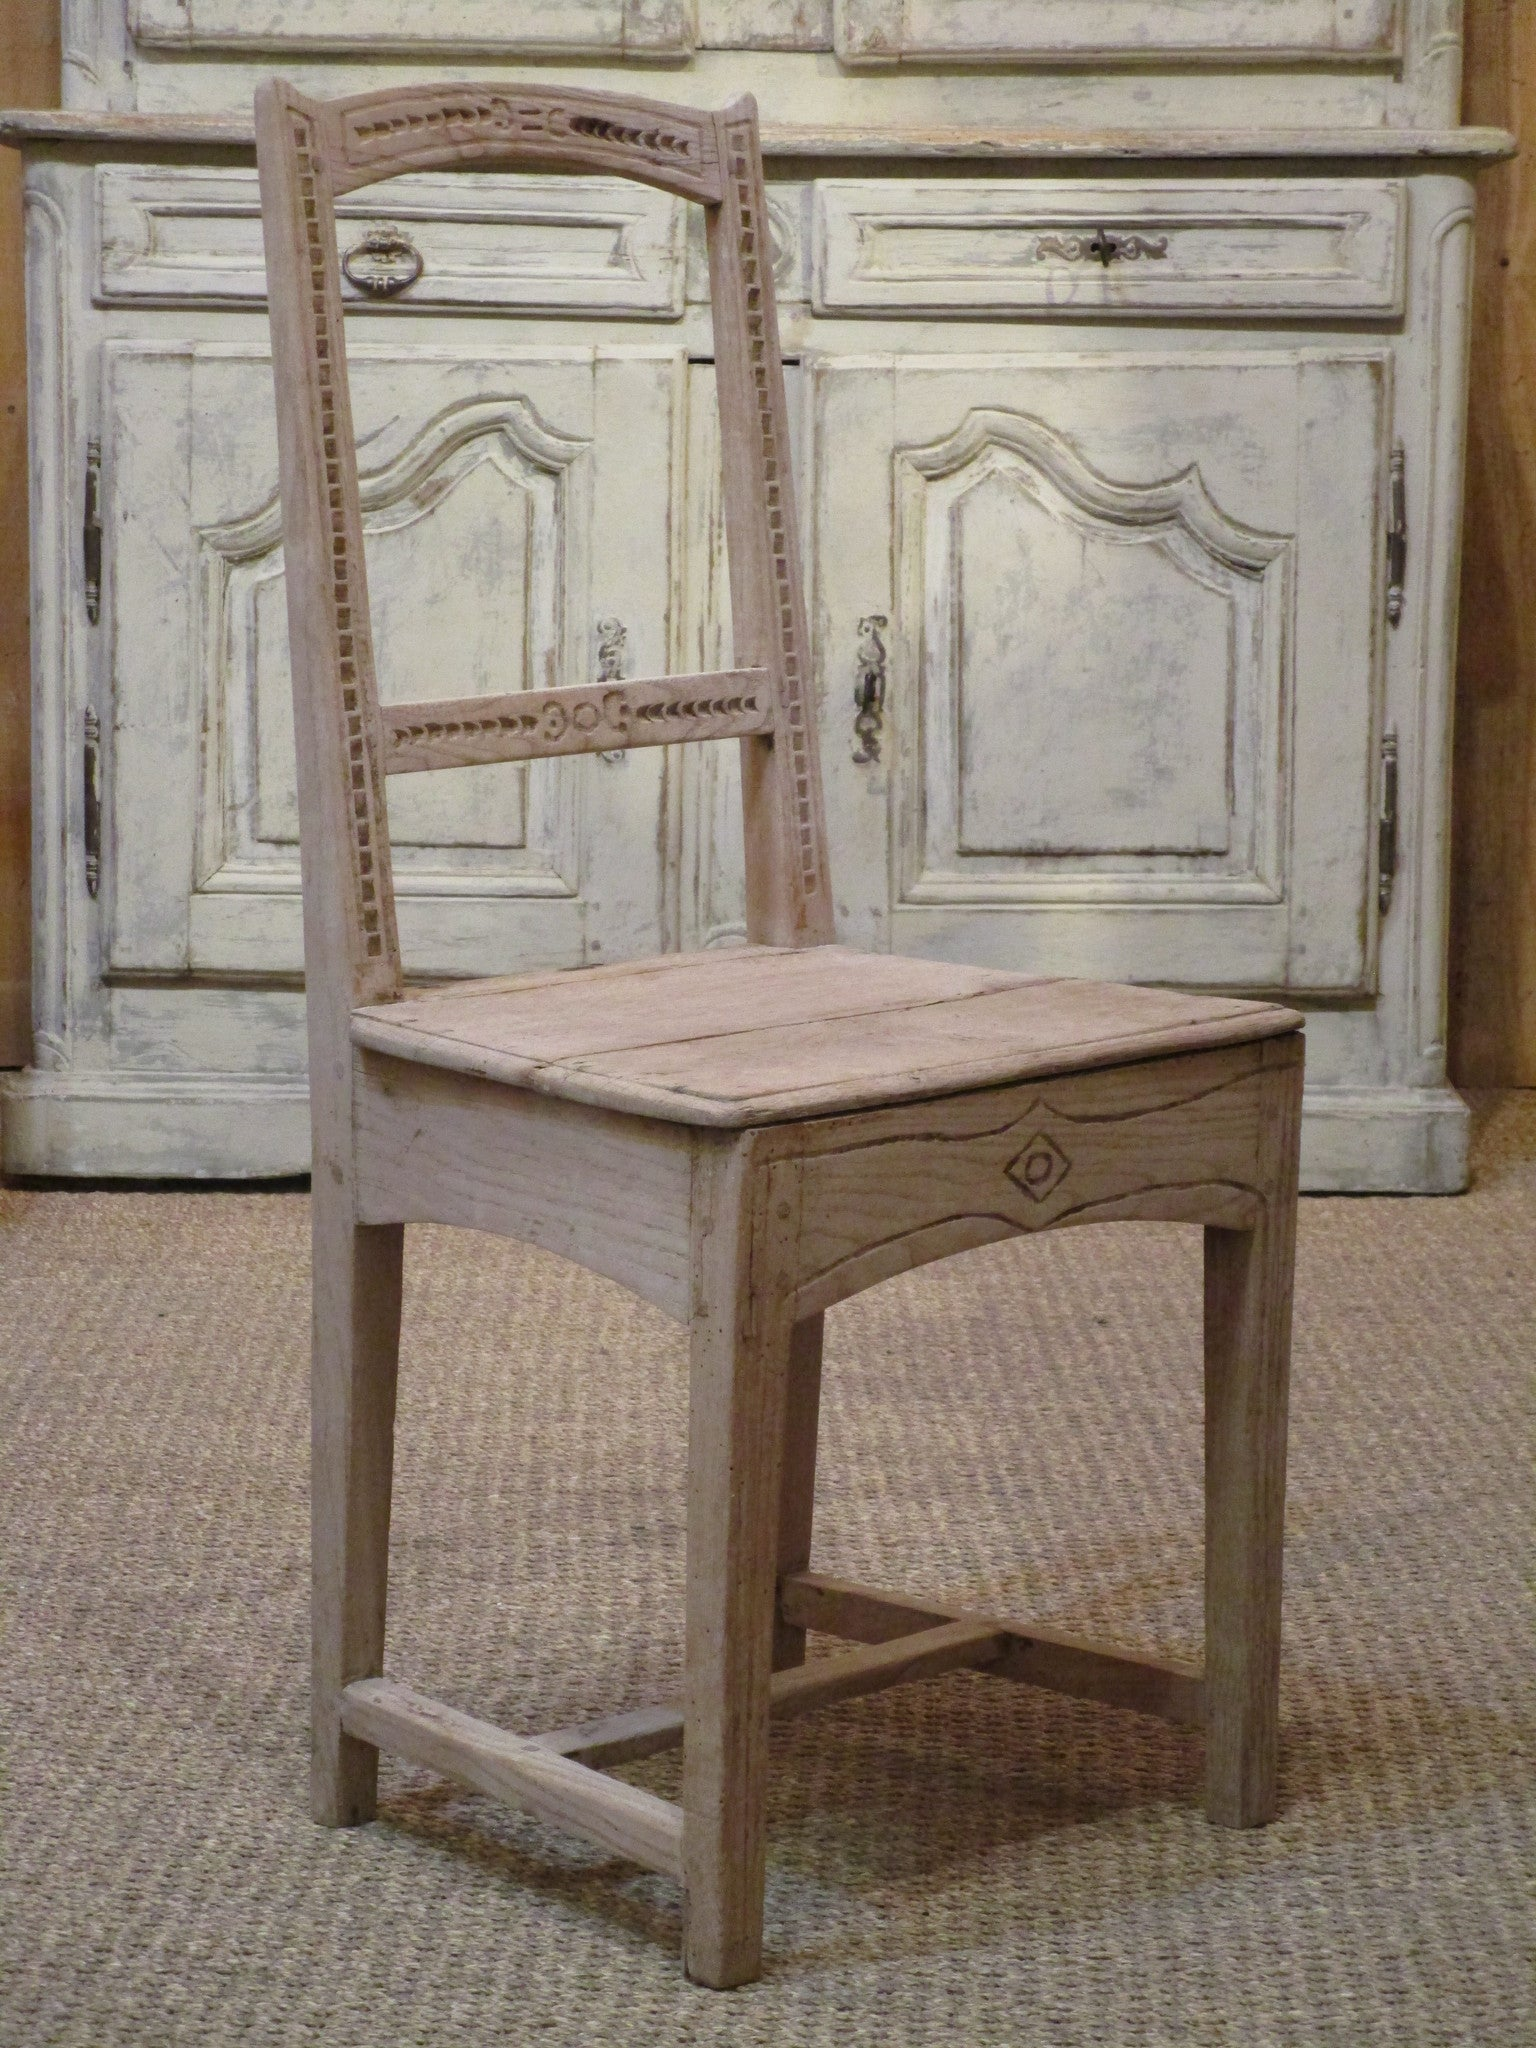 Detail Set of six 18th century French oak rustic chairs farmhouse decor